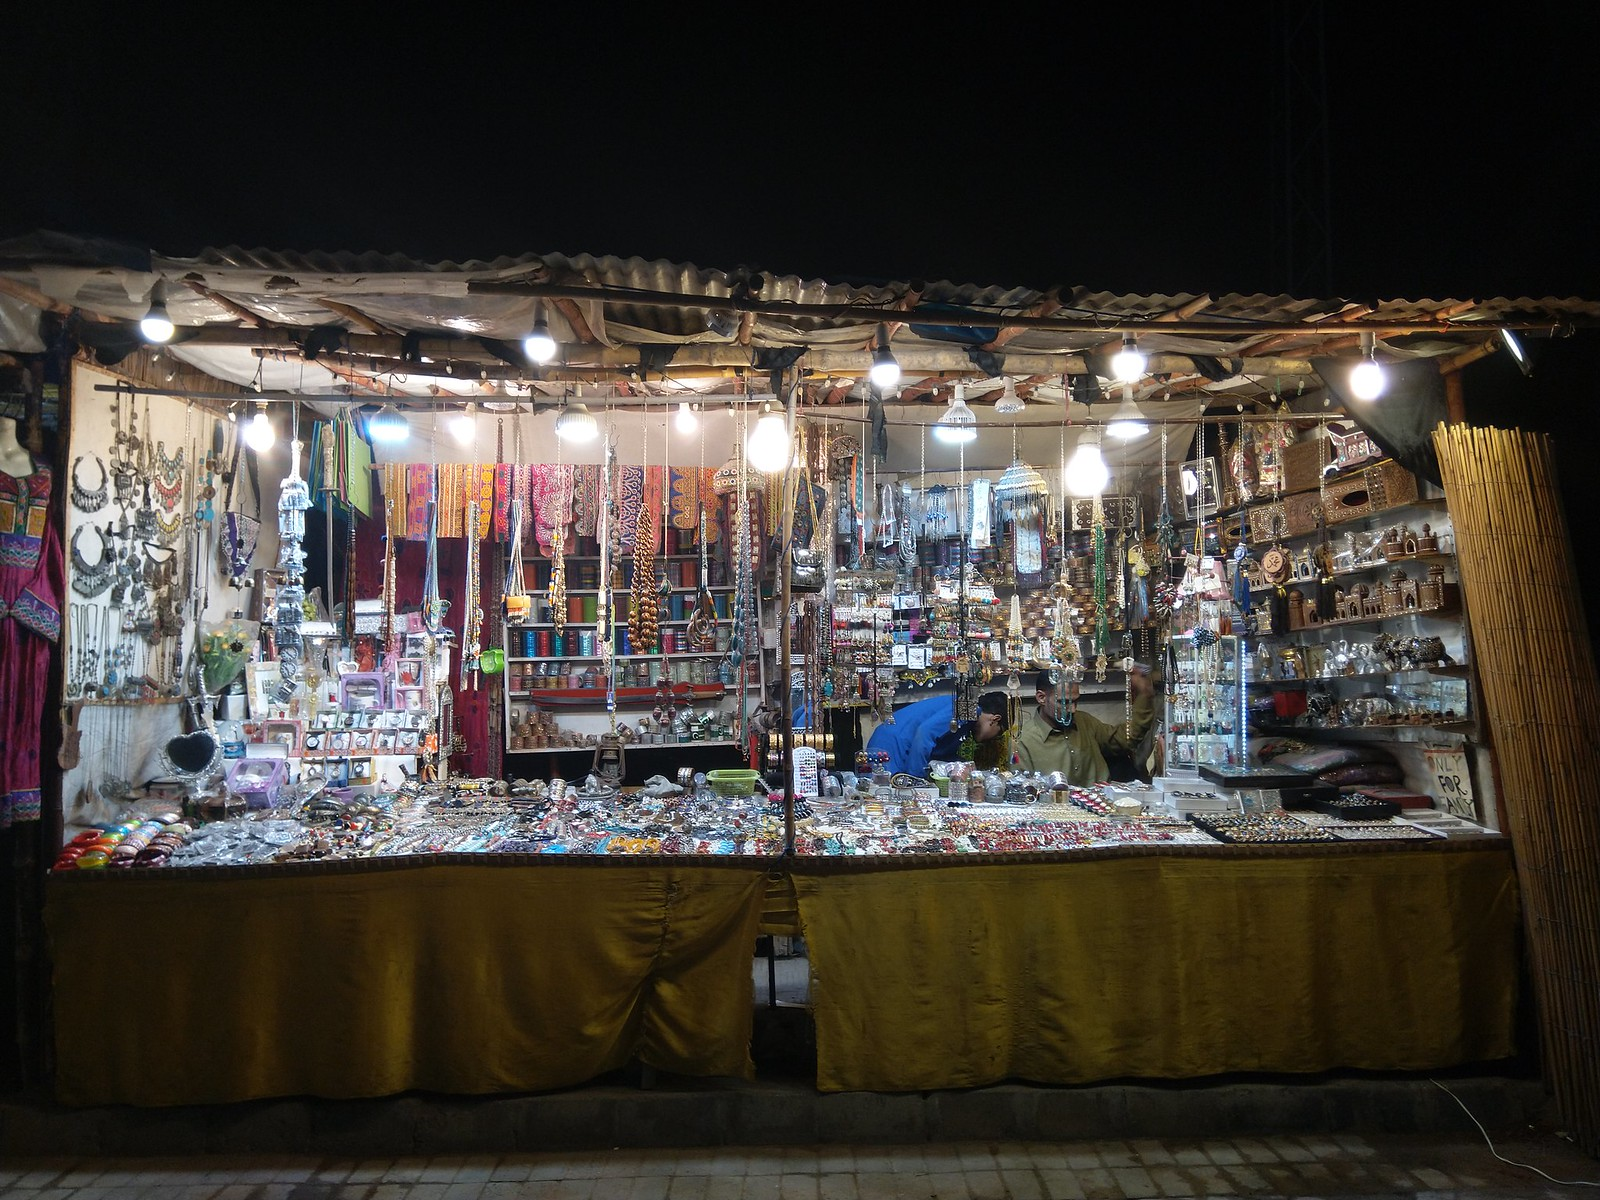 Shop Picture at night with Auto Mode on Nokia 6.1 Plus